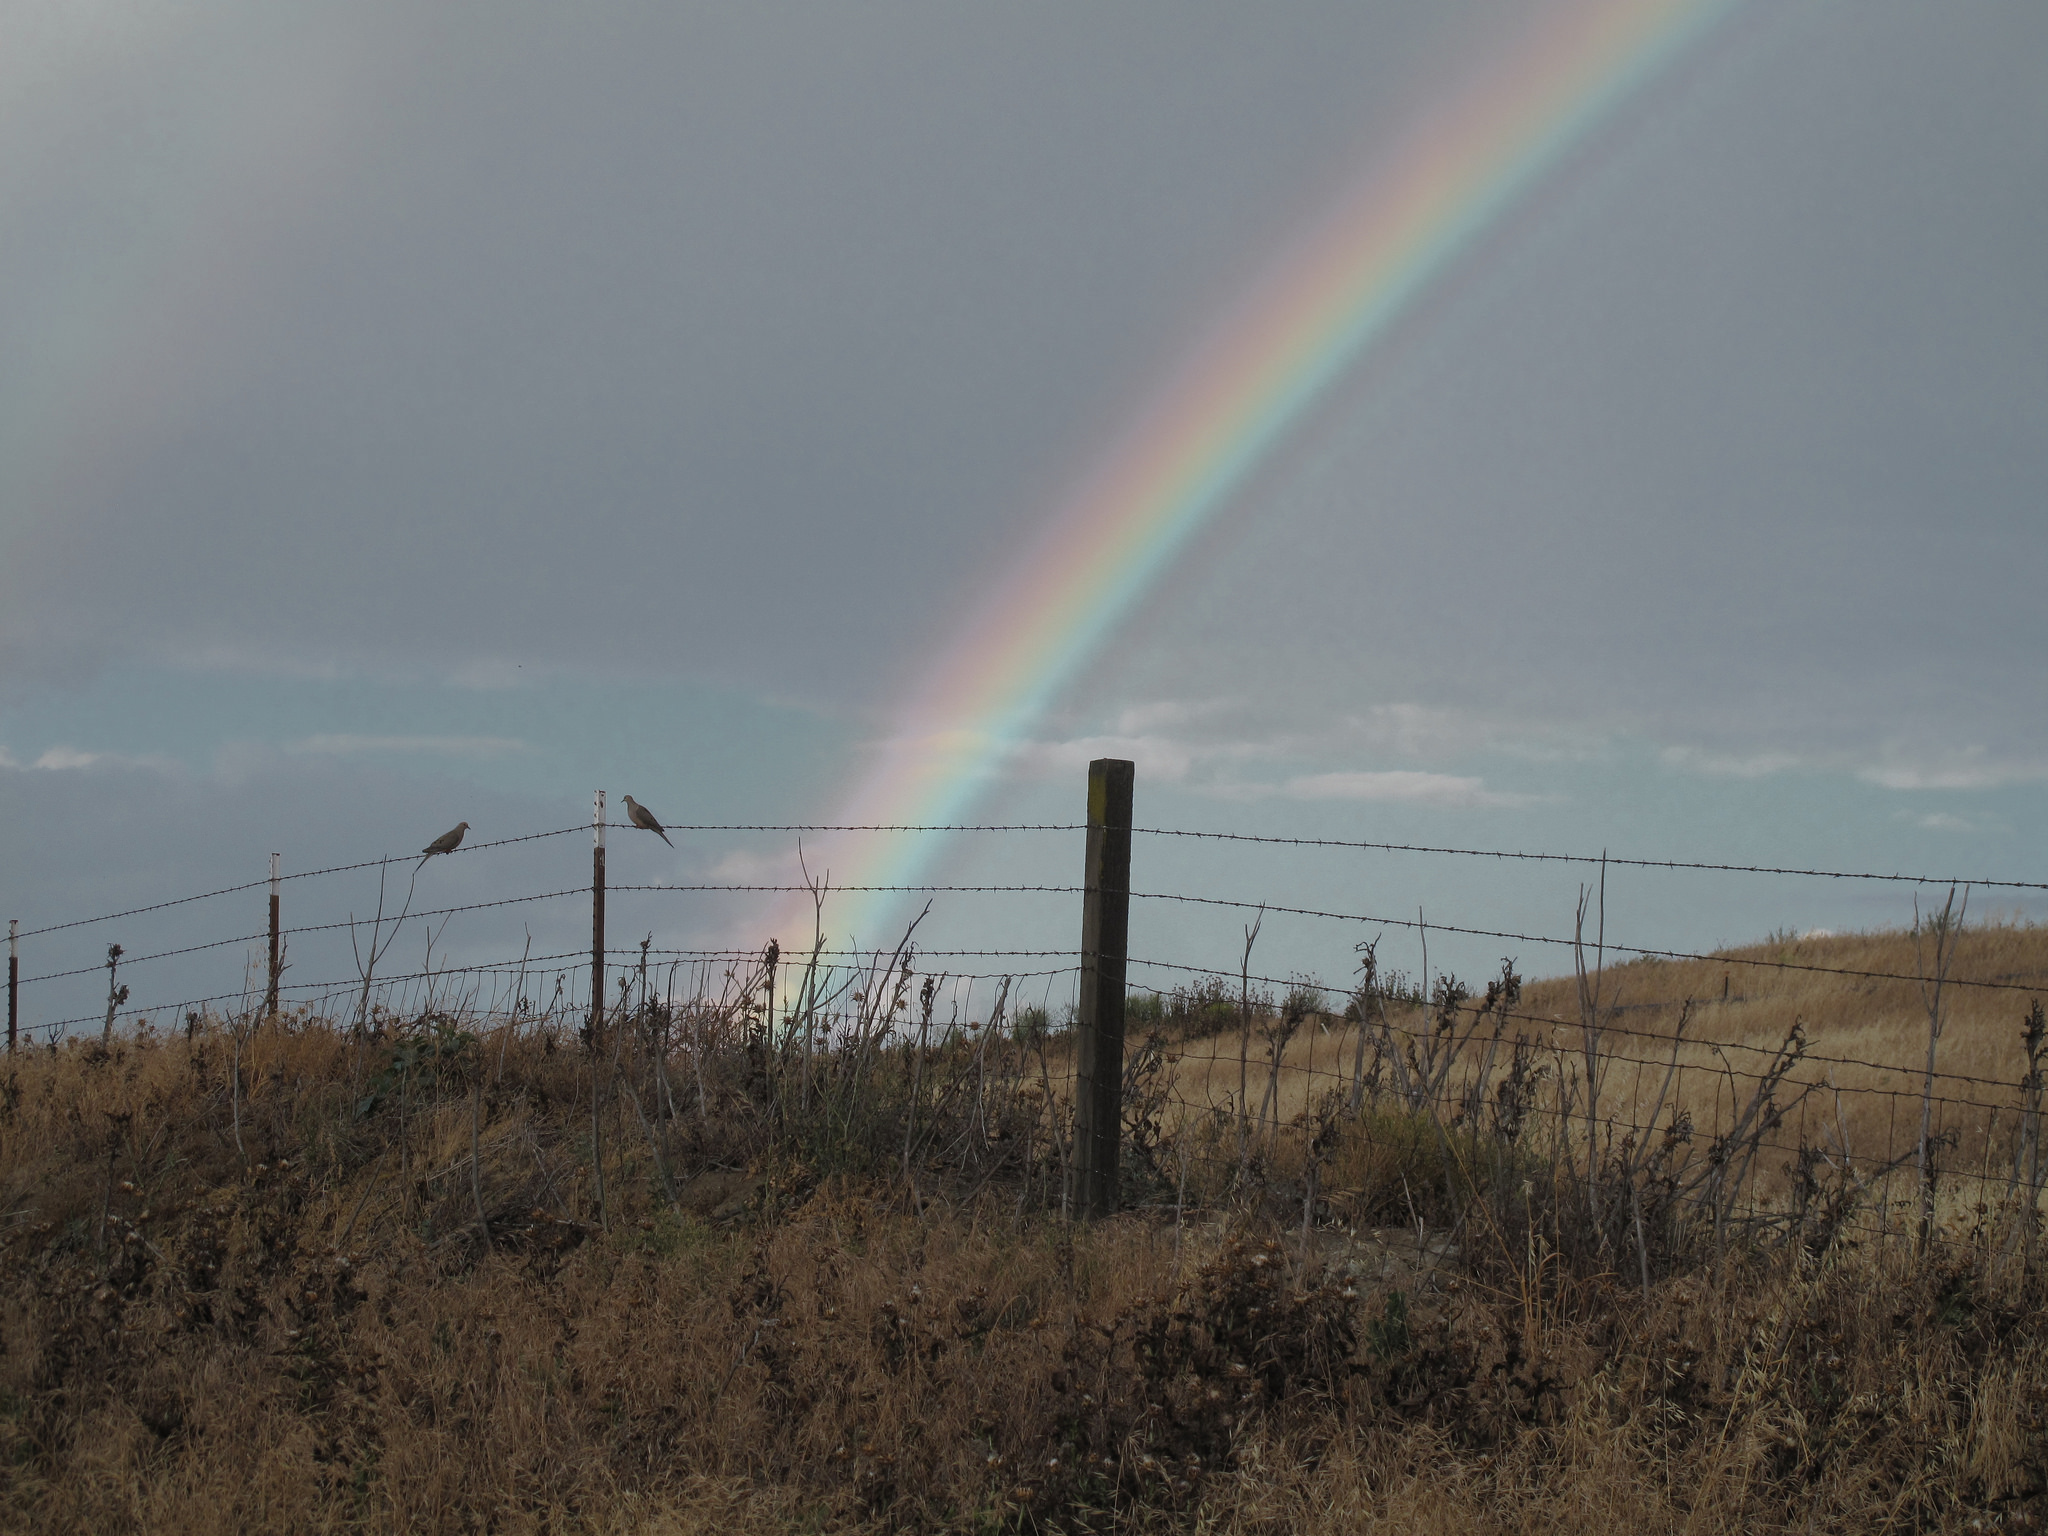 Rainbow and doves